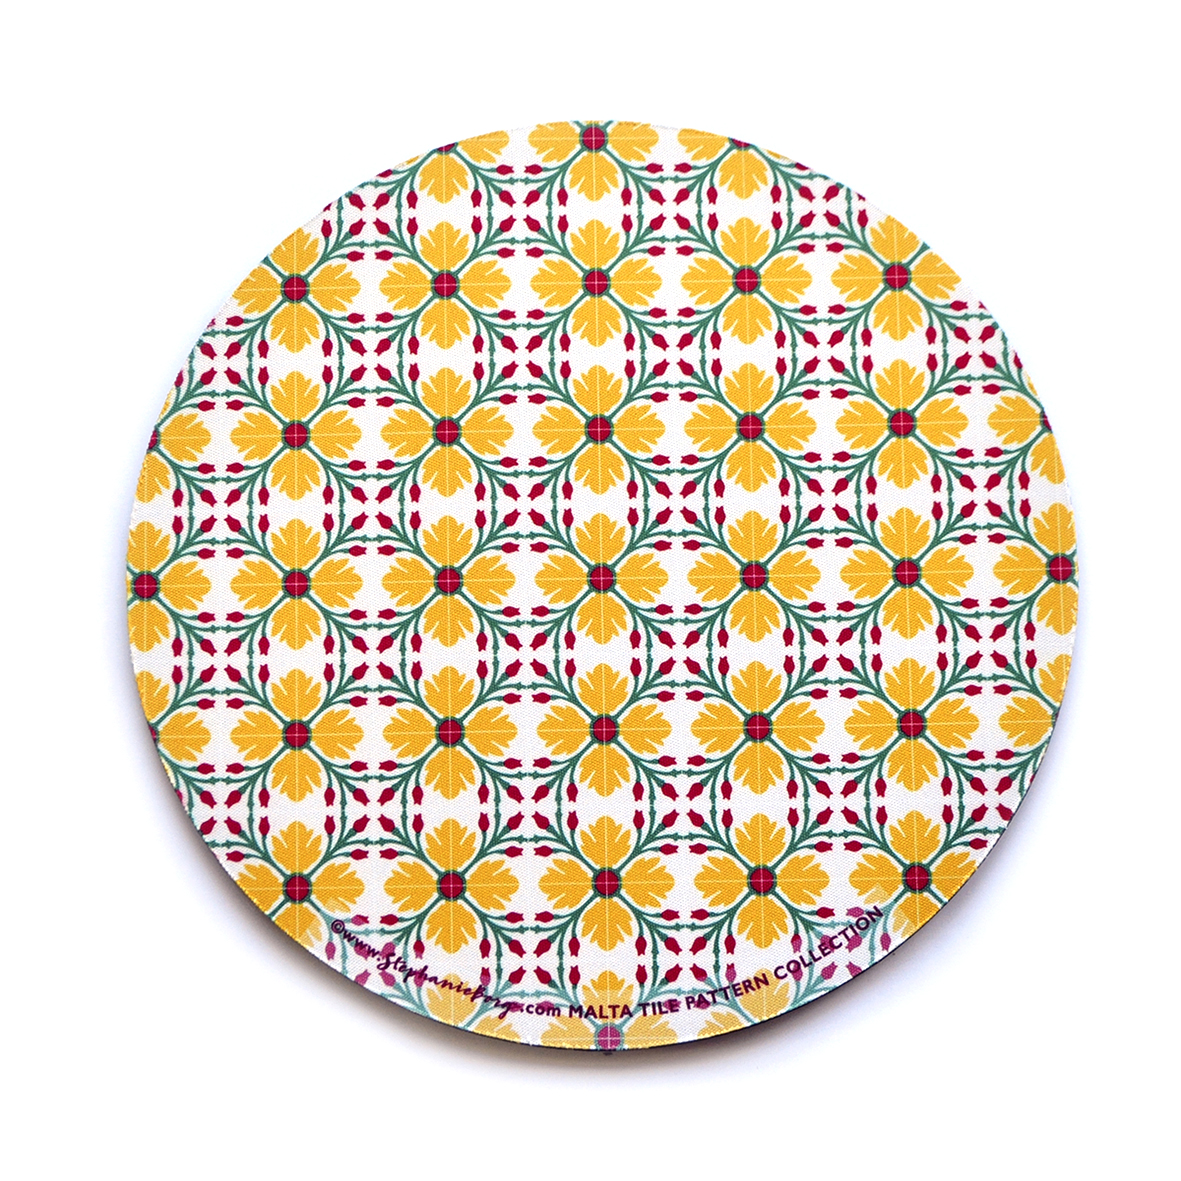 Mousepad with Maltese Tile Patterns, pattern no.10